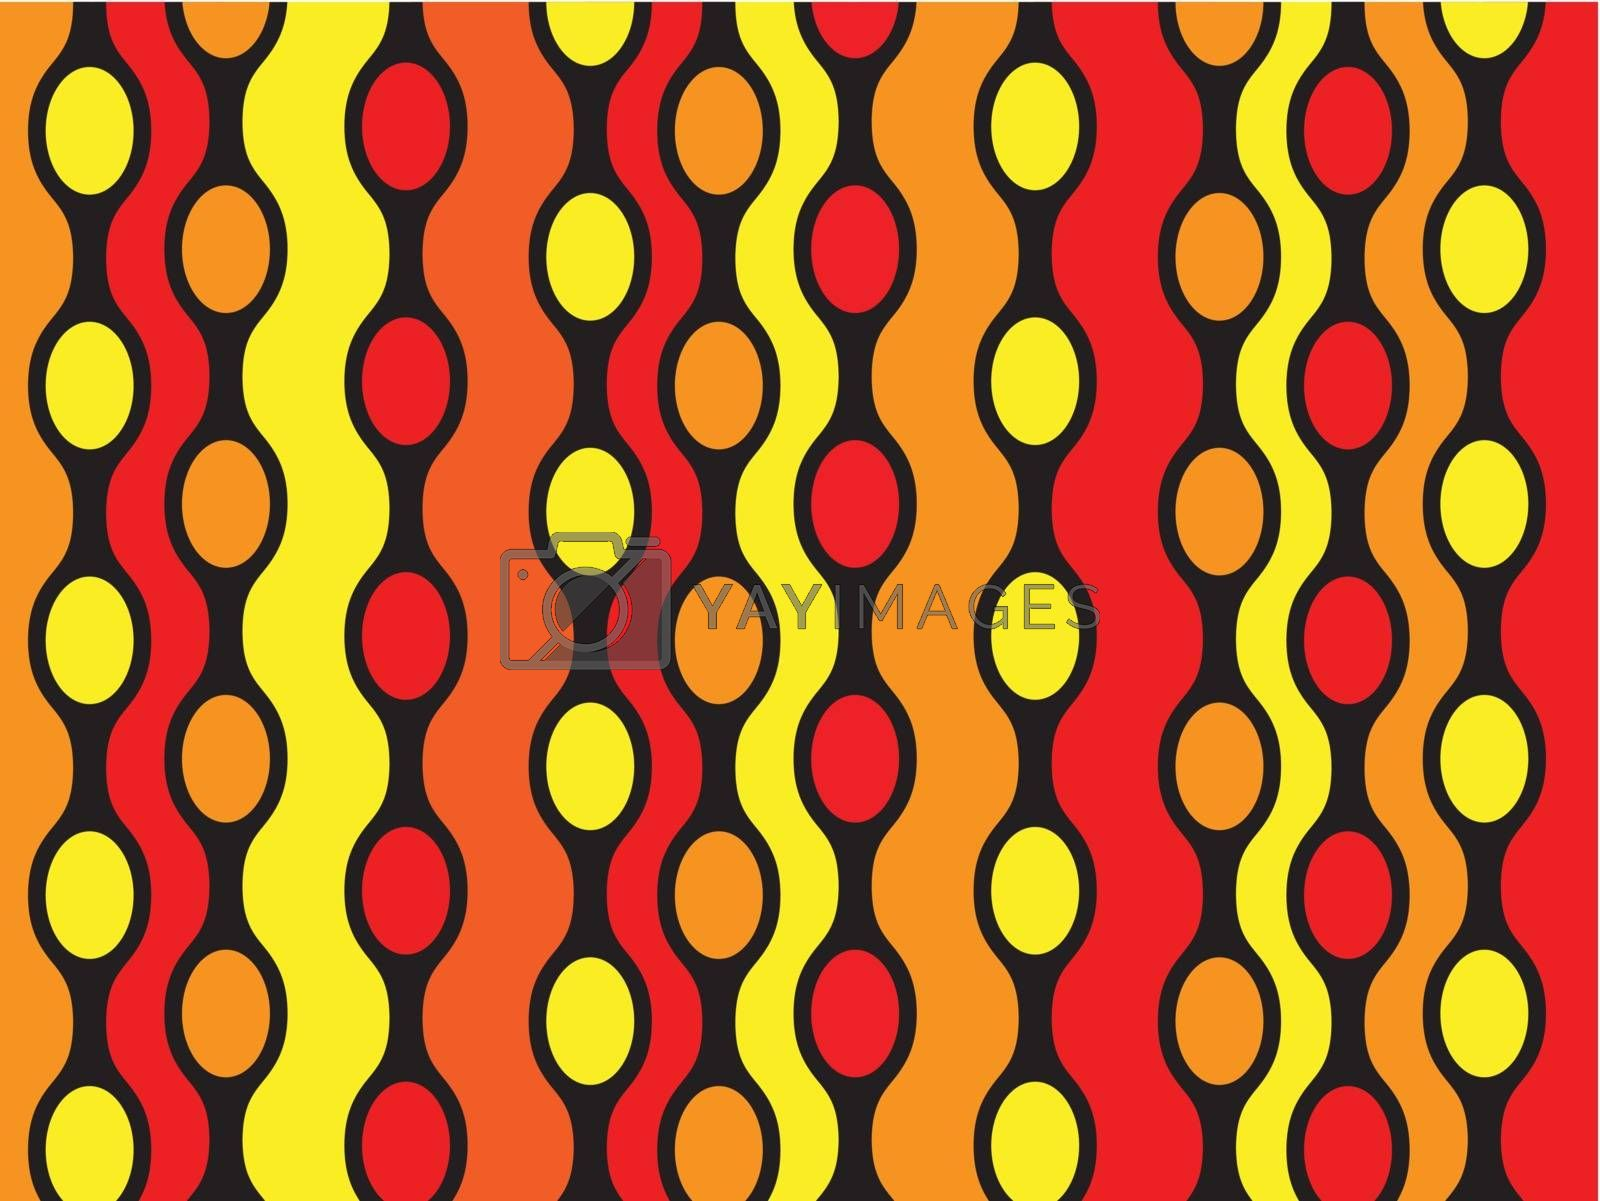 Abstract texture in red orange and yellow colors with black combination